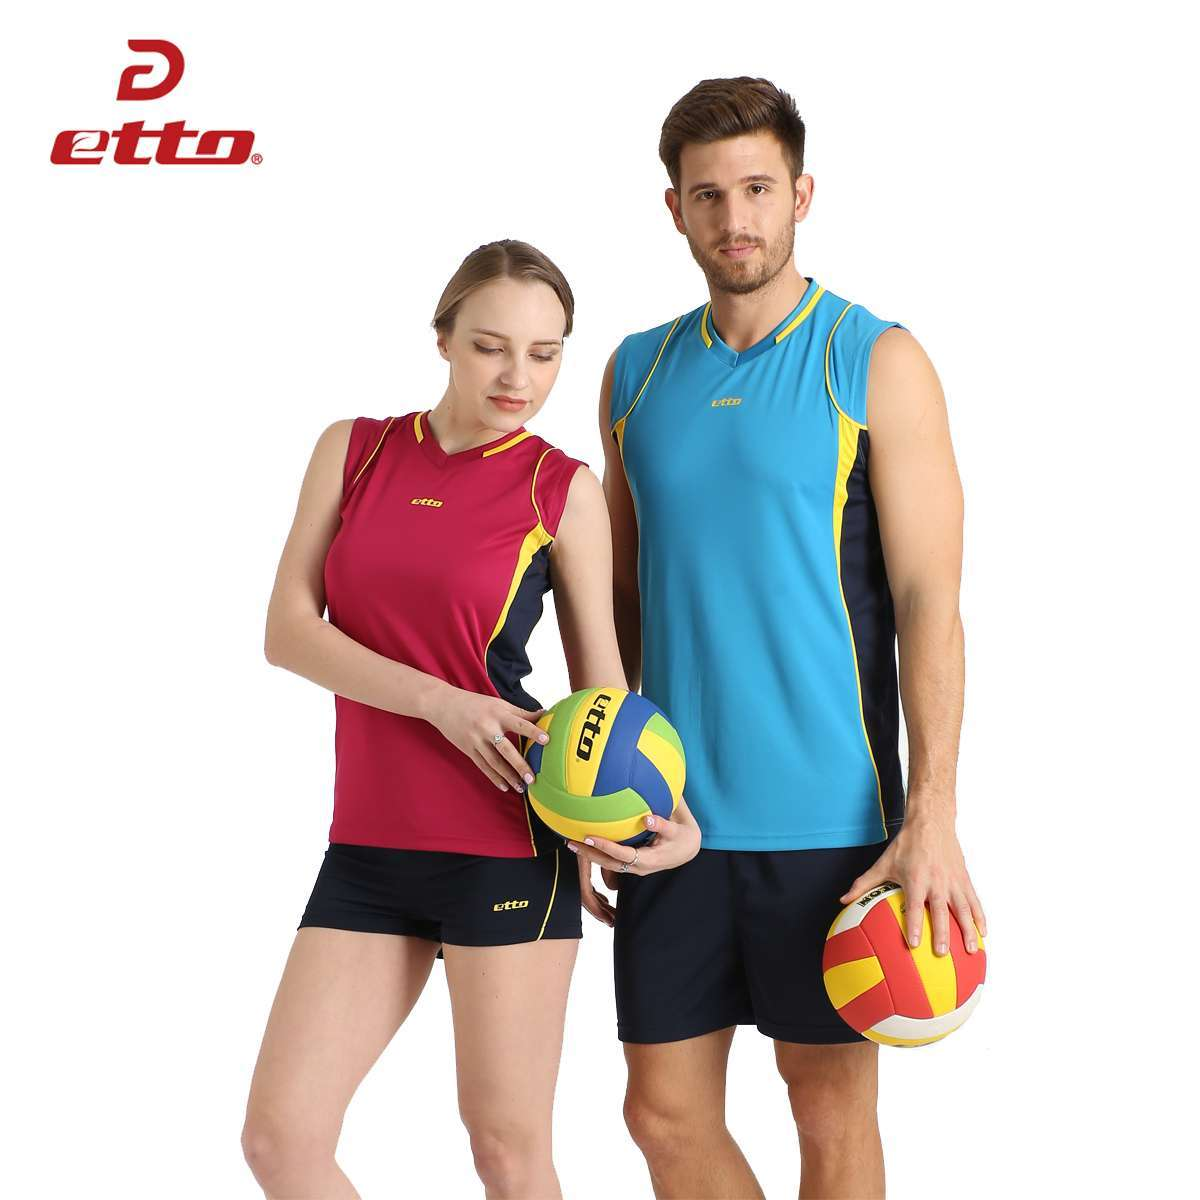 Etto Professional Men Sleeveless Volleyball Set Team Uniforms Breathable Quick dry Volleyball Jersey Suit Sportswear HXB002 3